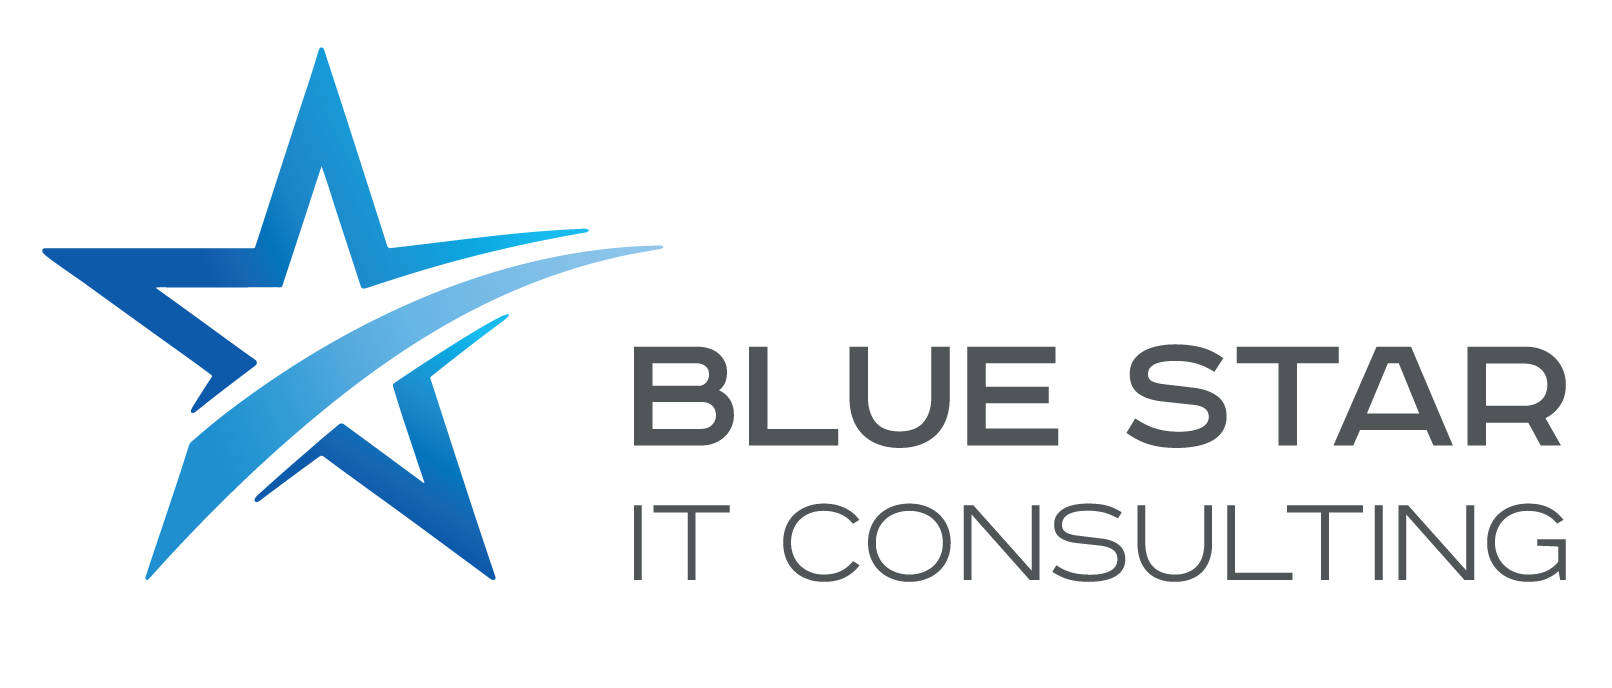 Blue Star IT Consulting